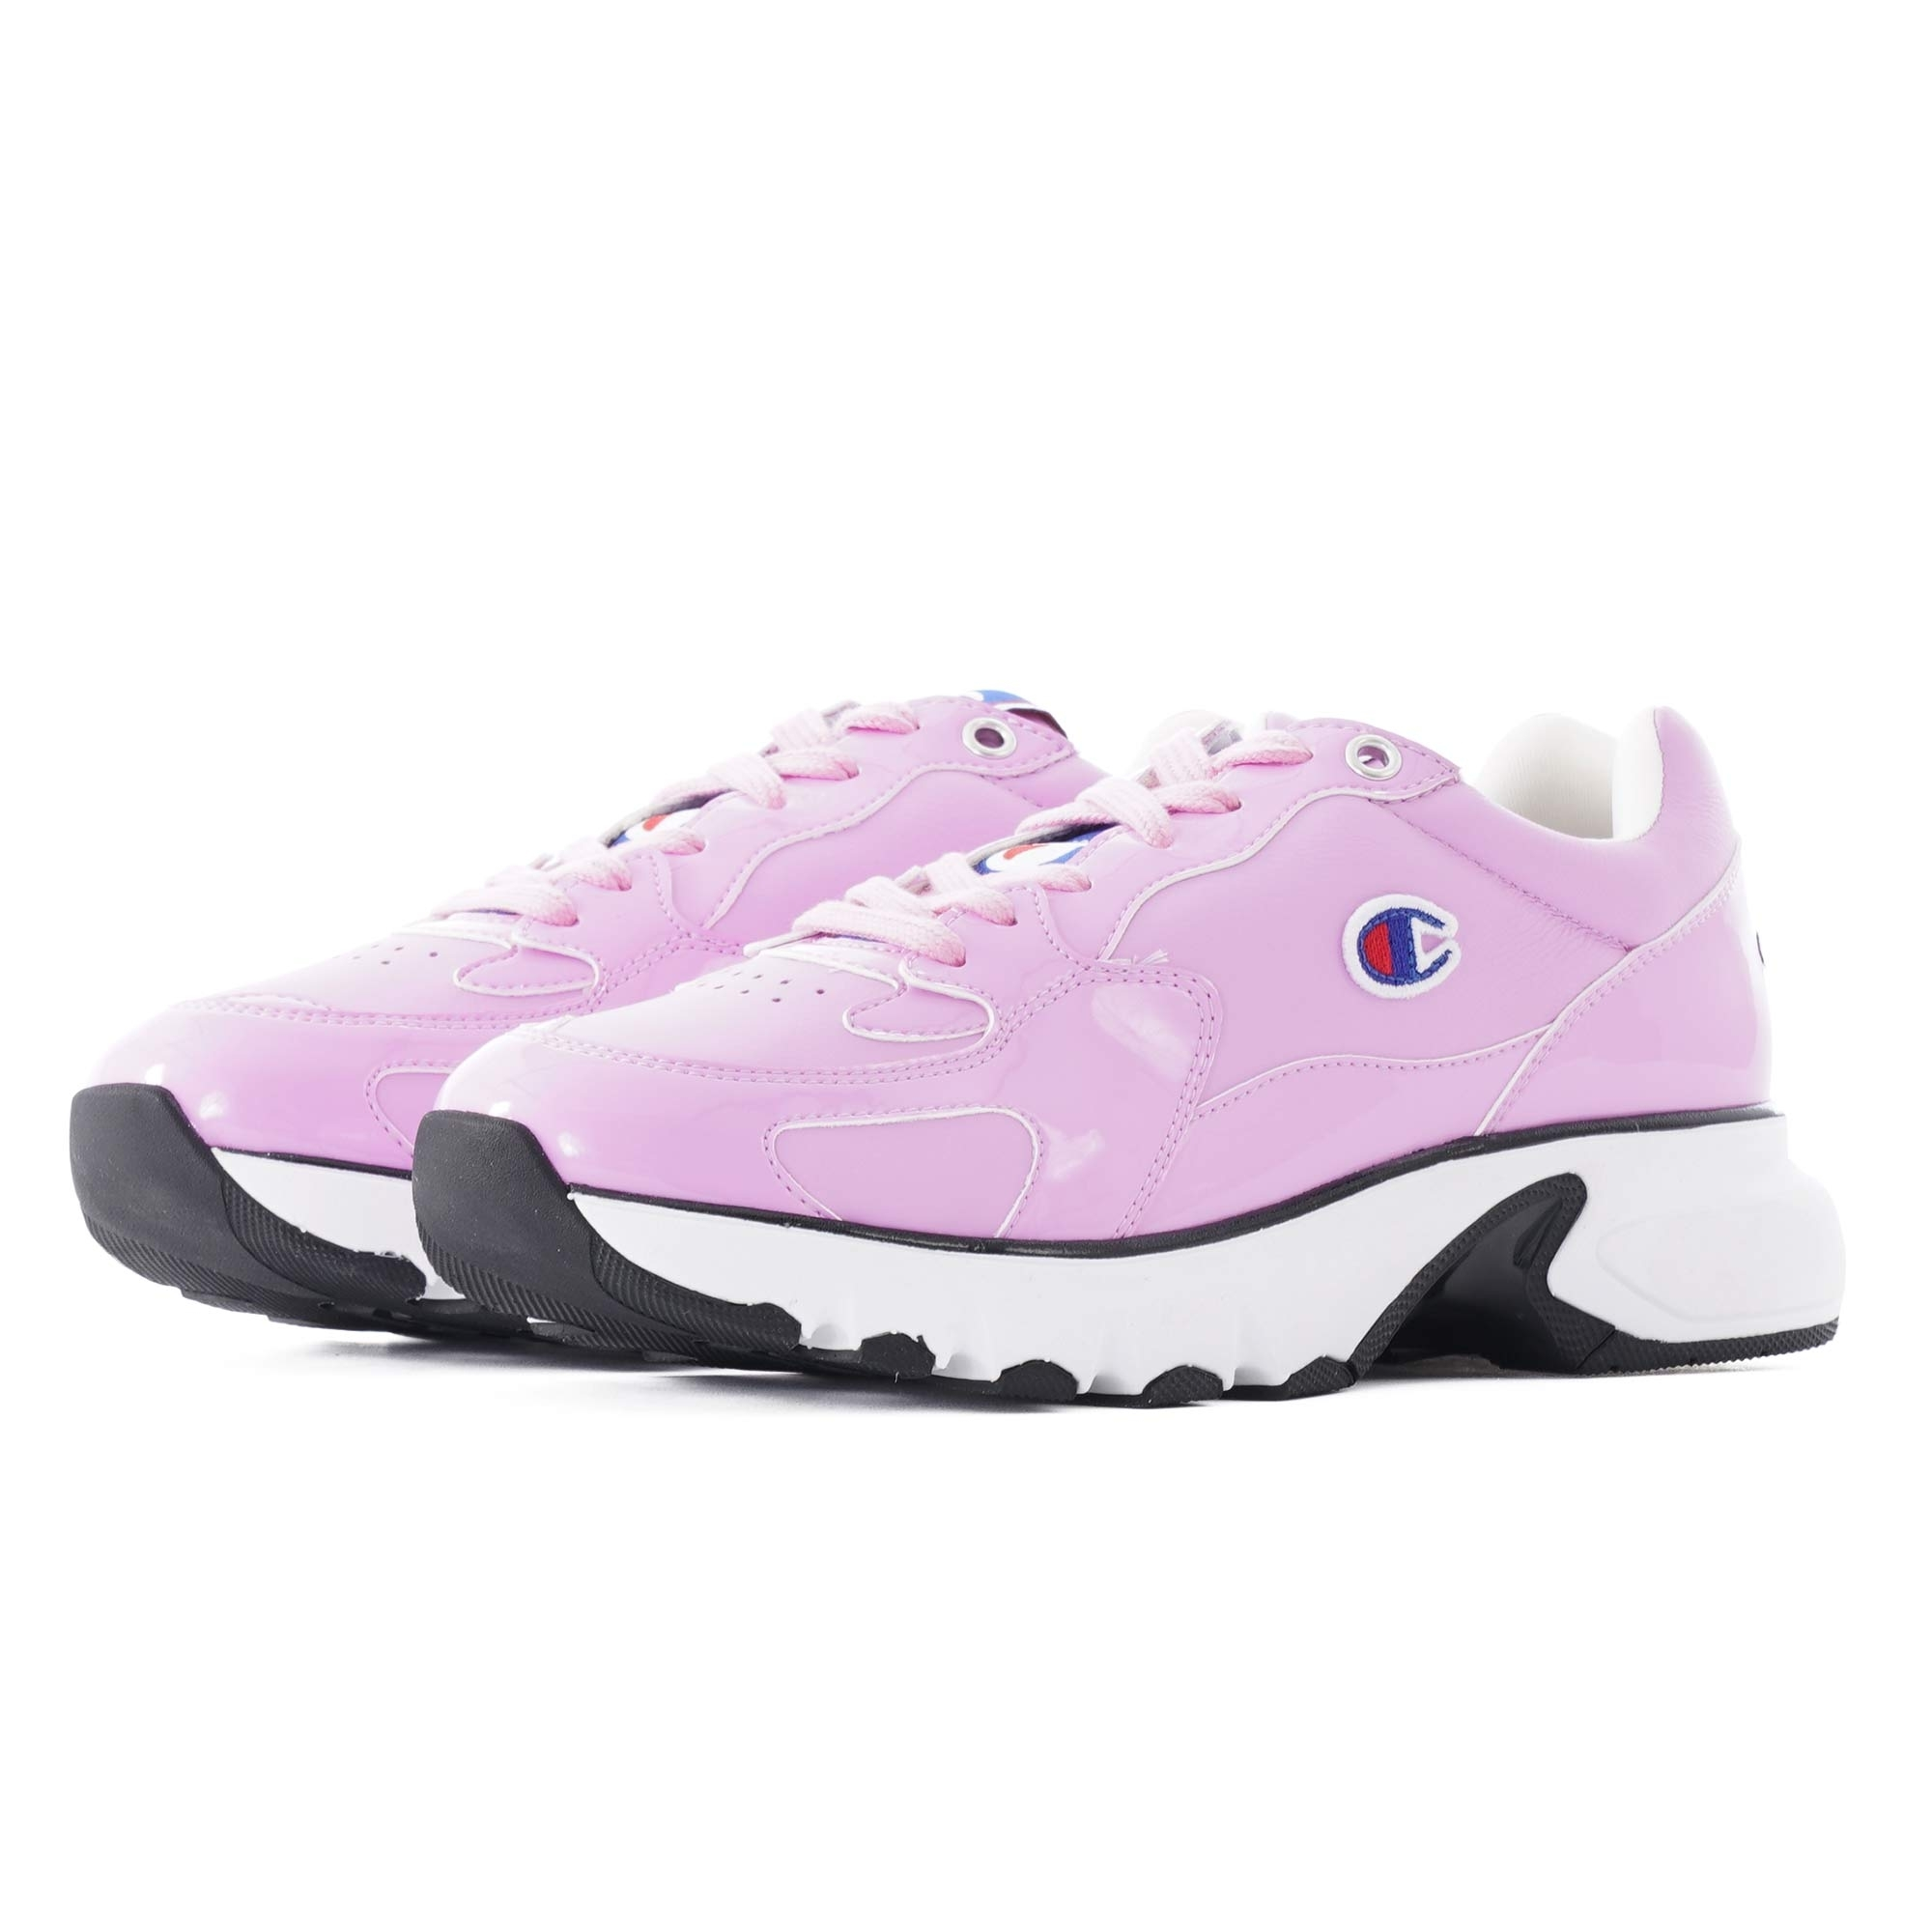 Image of CWA-1 Patent Leather Sneakers - Pink